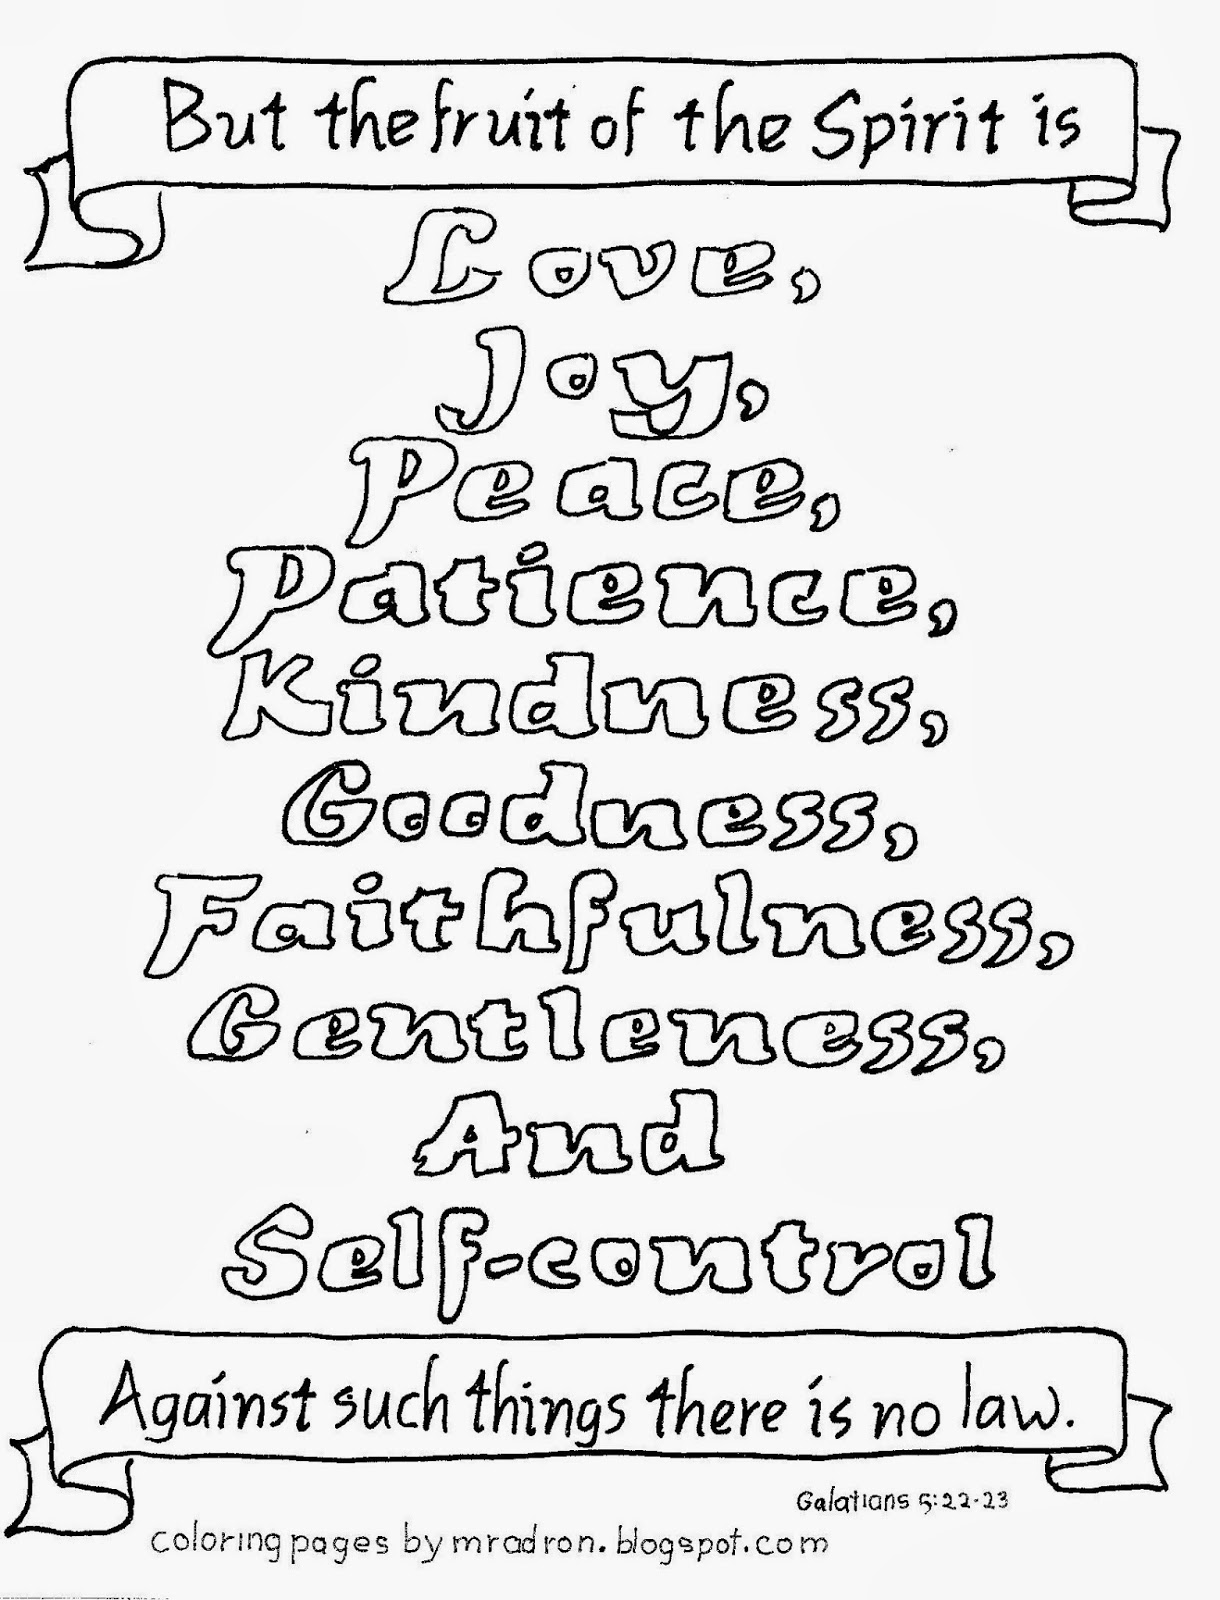 coloring pages for kids by mr adron free fruit of the spirit